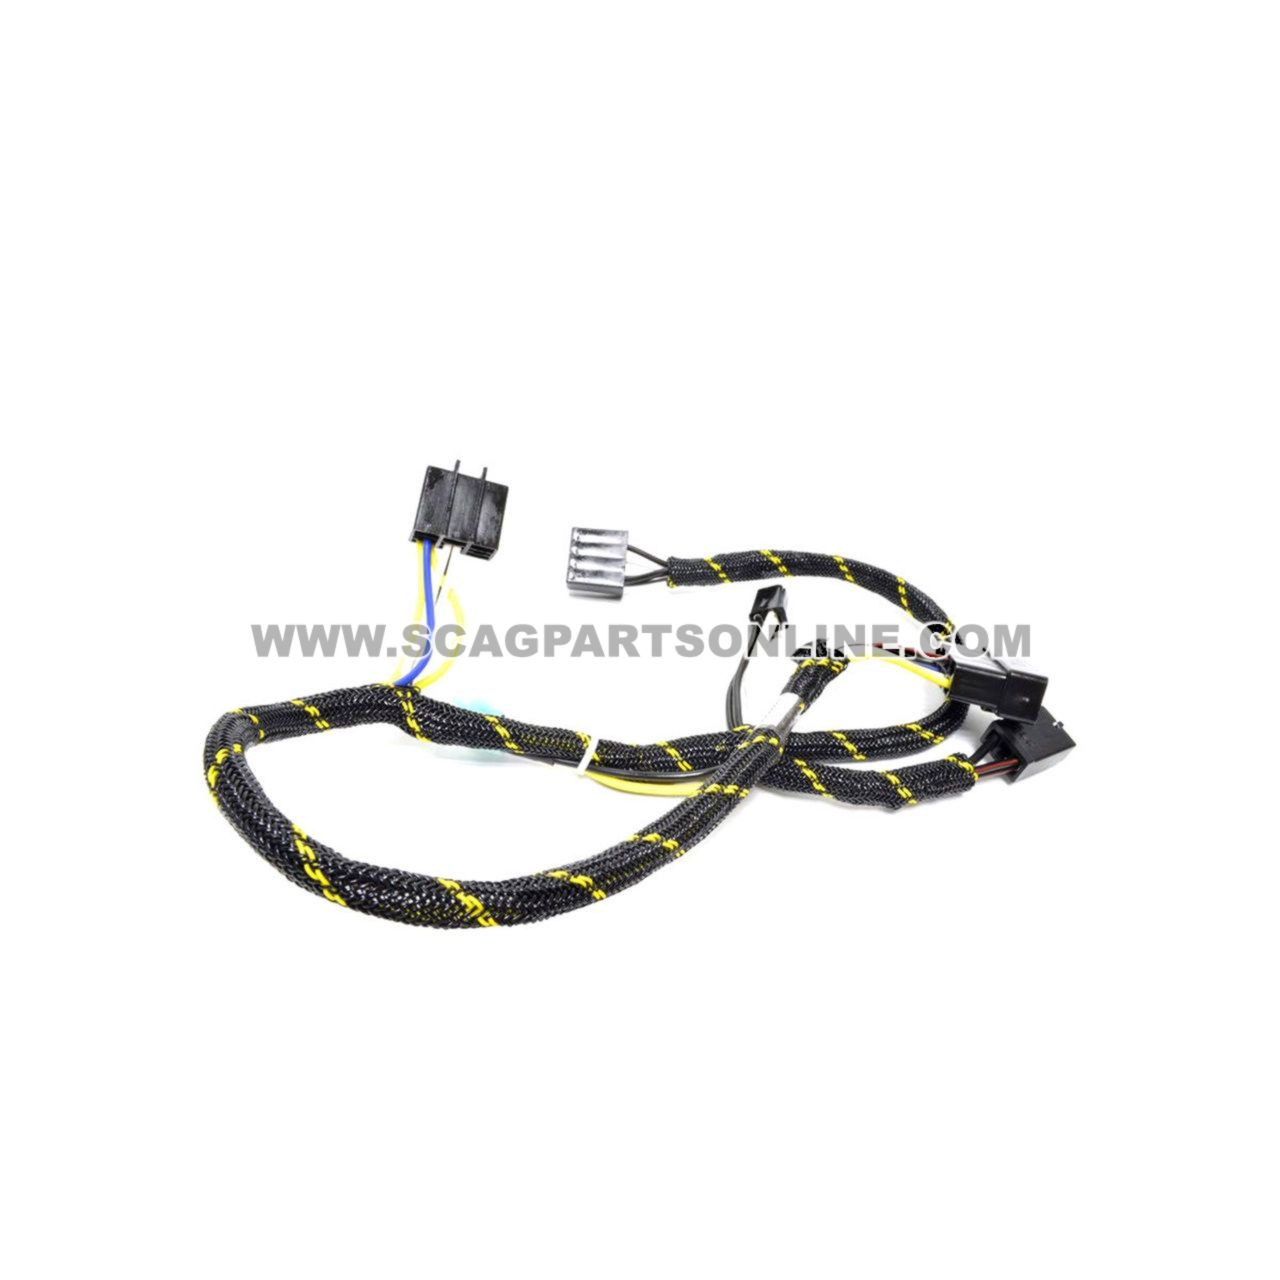 Scag WIRE HARNESS, SWZ HANDLE 481865 - Image 1